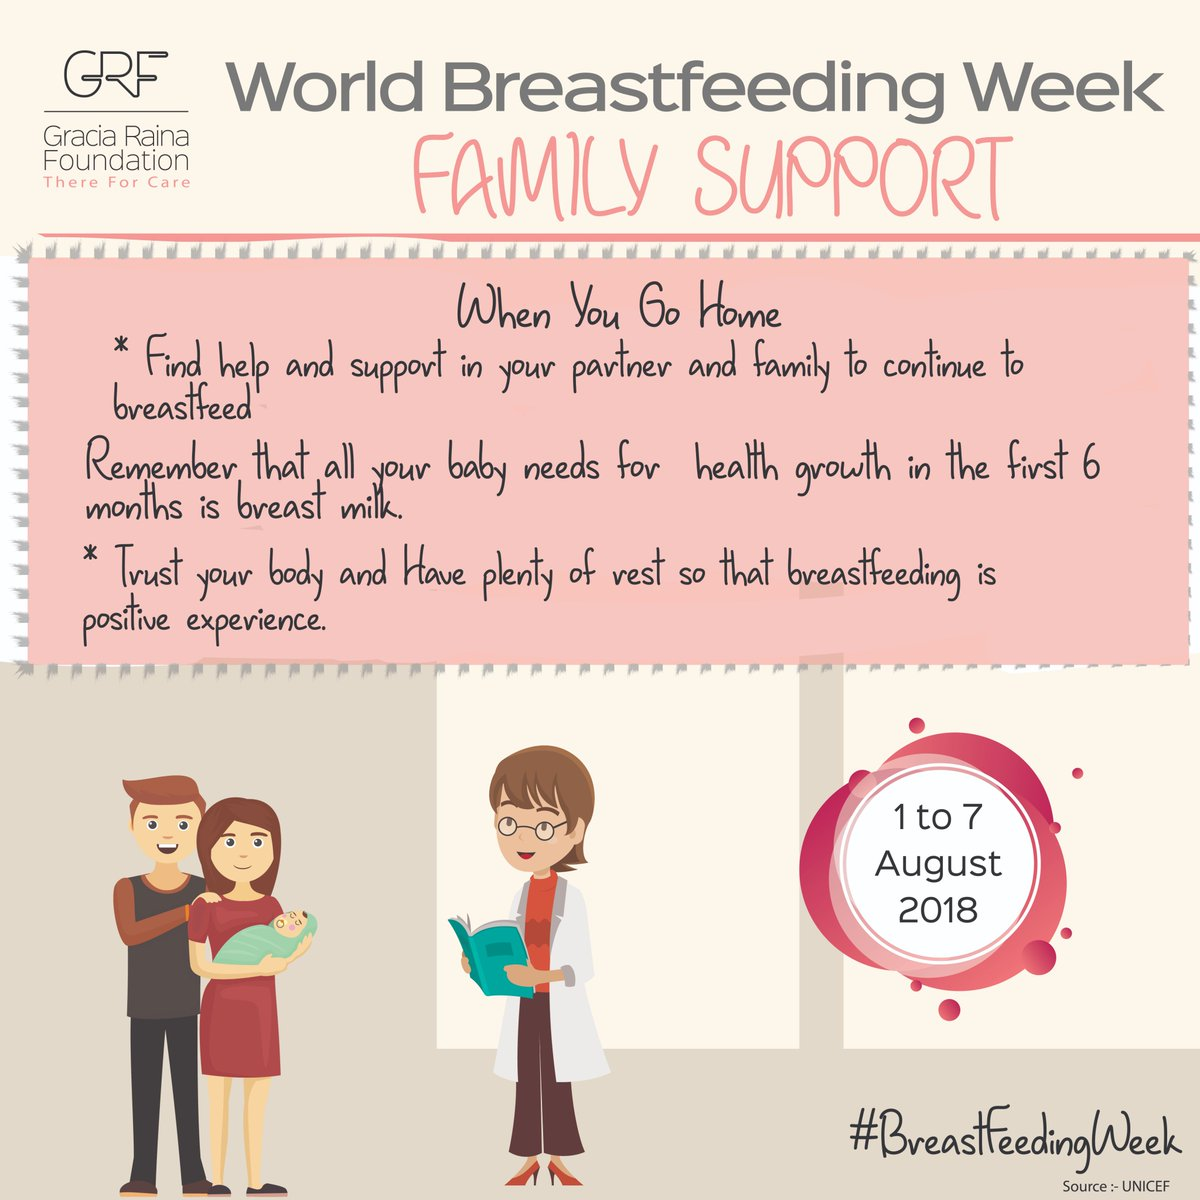 Nursing doesn't come easy for every new mother. Spouse and family support could make a big difference for her. You are an important part of her success. Happy mother, happy baby! #GRF #BreastfeedingWeek2018 #breastfeedweek